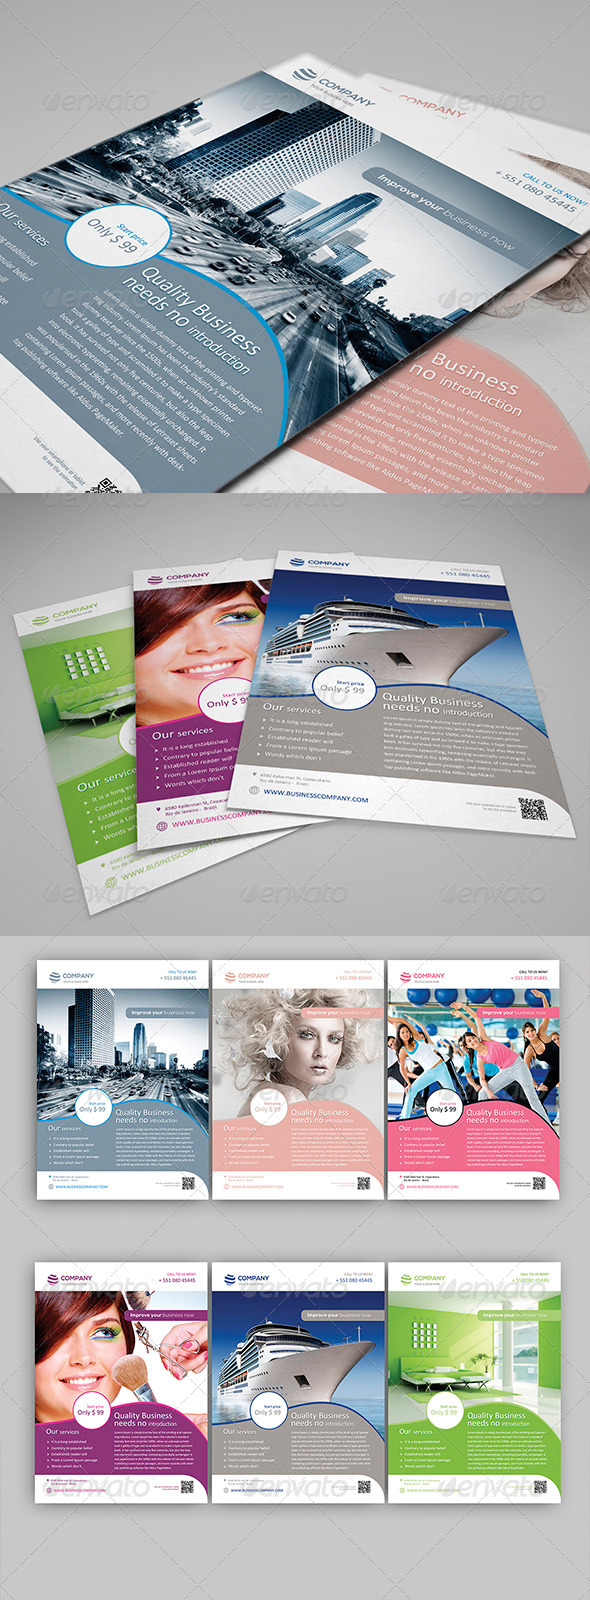 GraphicRiver Multipurpose Corporate Flyer Vol 1 4689387